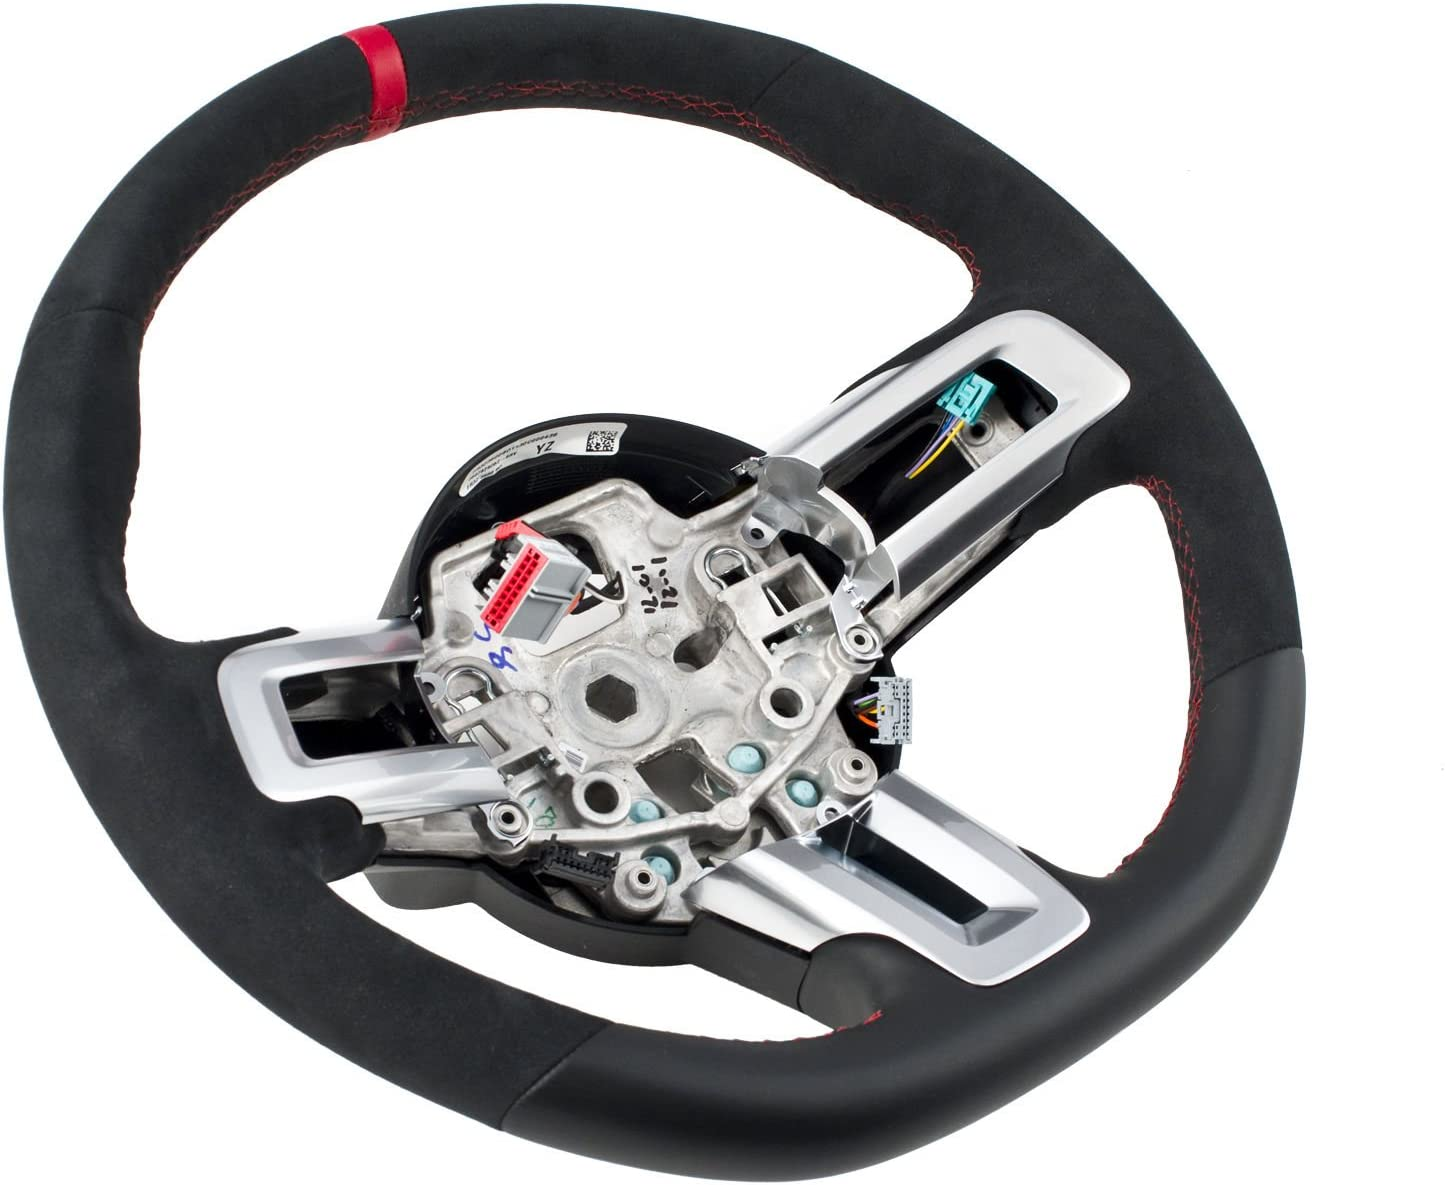 Steering Wheel Suede Leather - Stitching Mus Free supreme shipping anywhere in the nation Red 2015-2017 for